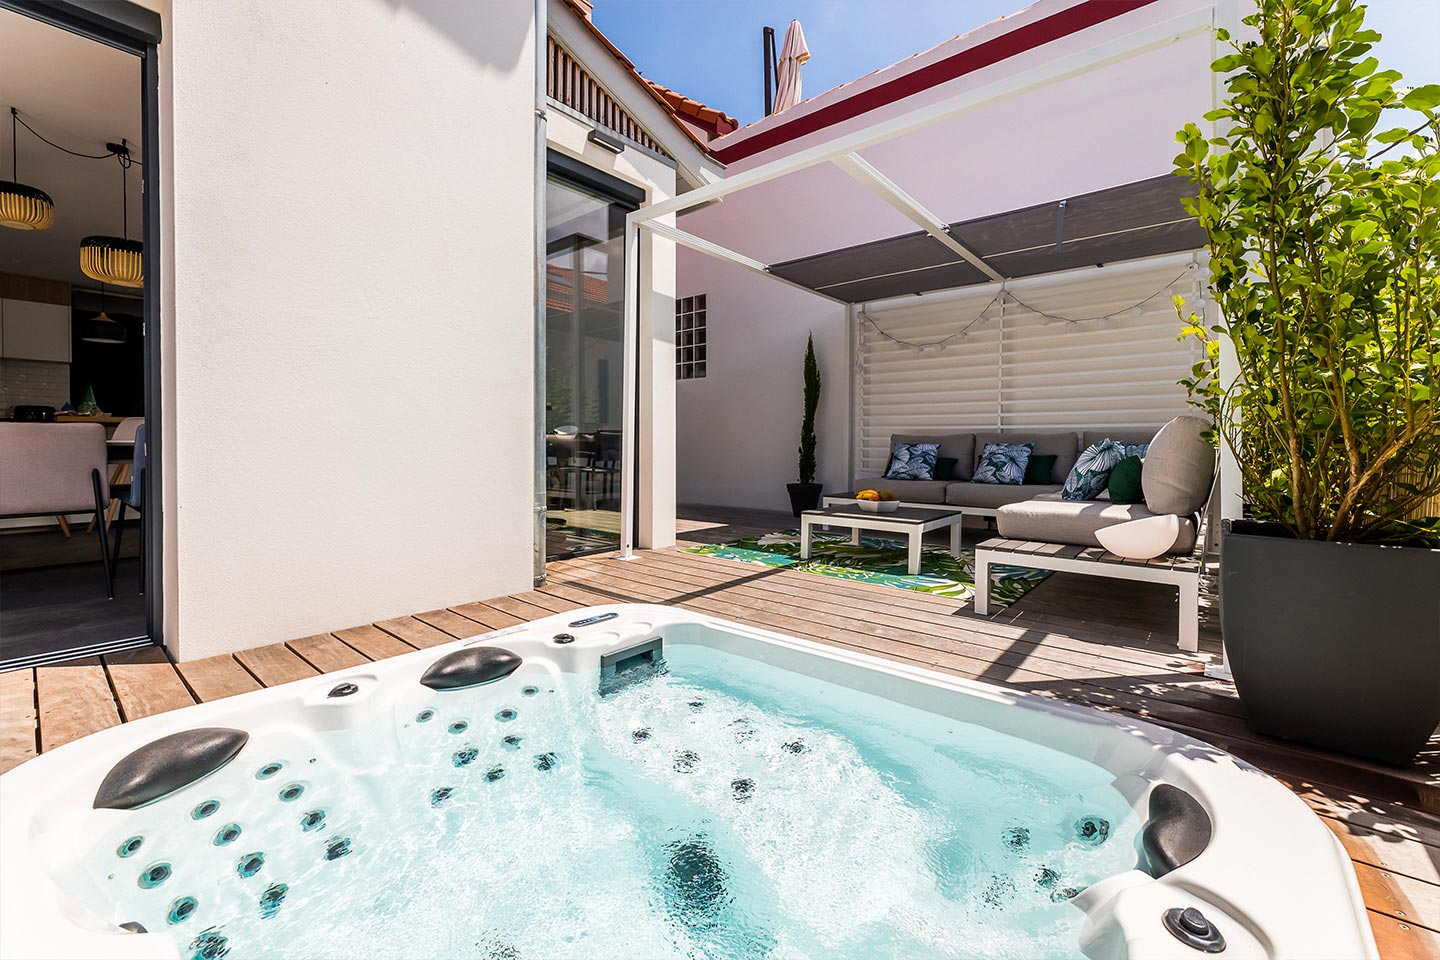 BLOOMY Rent a Townhouse with terrace and jacuzzi in Biarritz